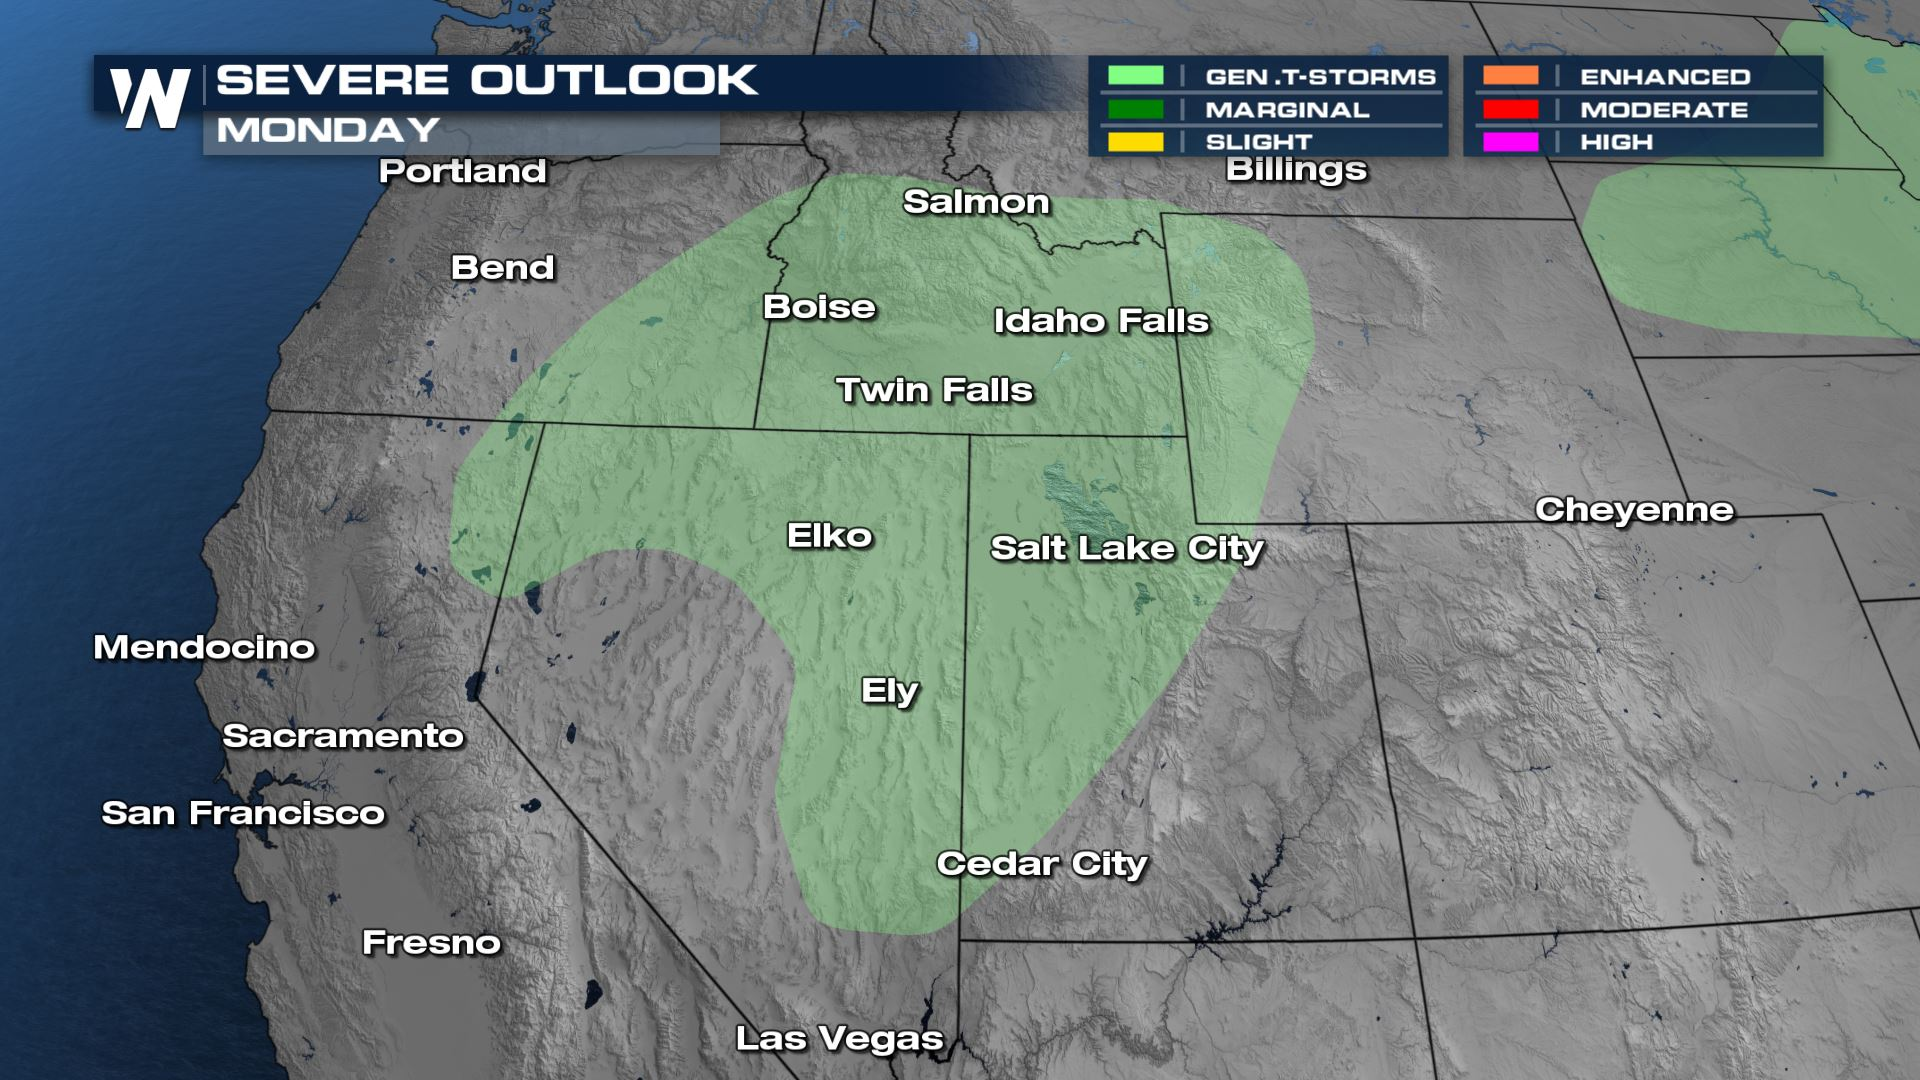 Staying Active Monday for the Northern and Central Rockies